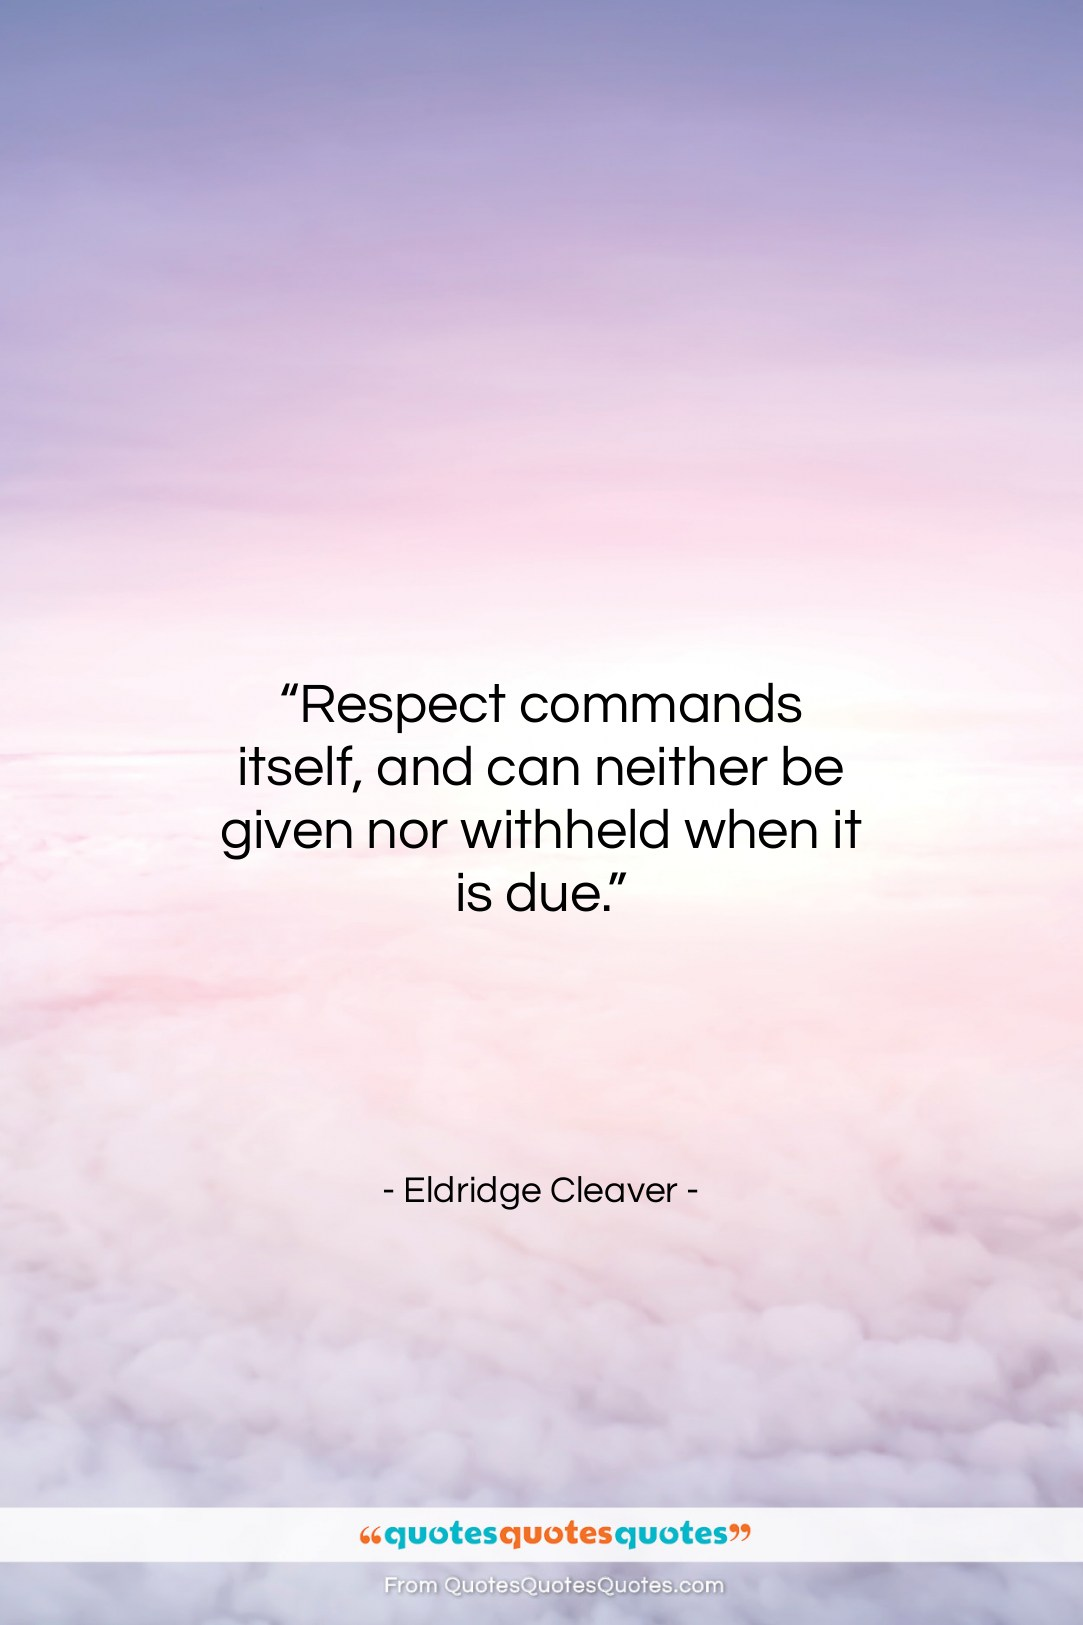 """Eldridge Cleaver quote: """"Respect commands itself, and can neither be…""""- at QuotesQuotesQuotes.com"""